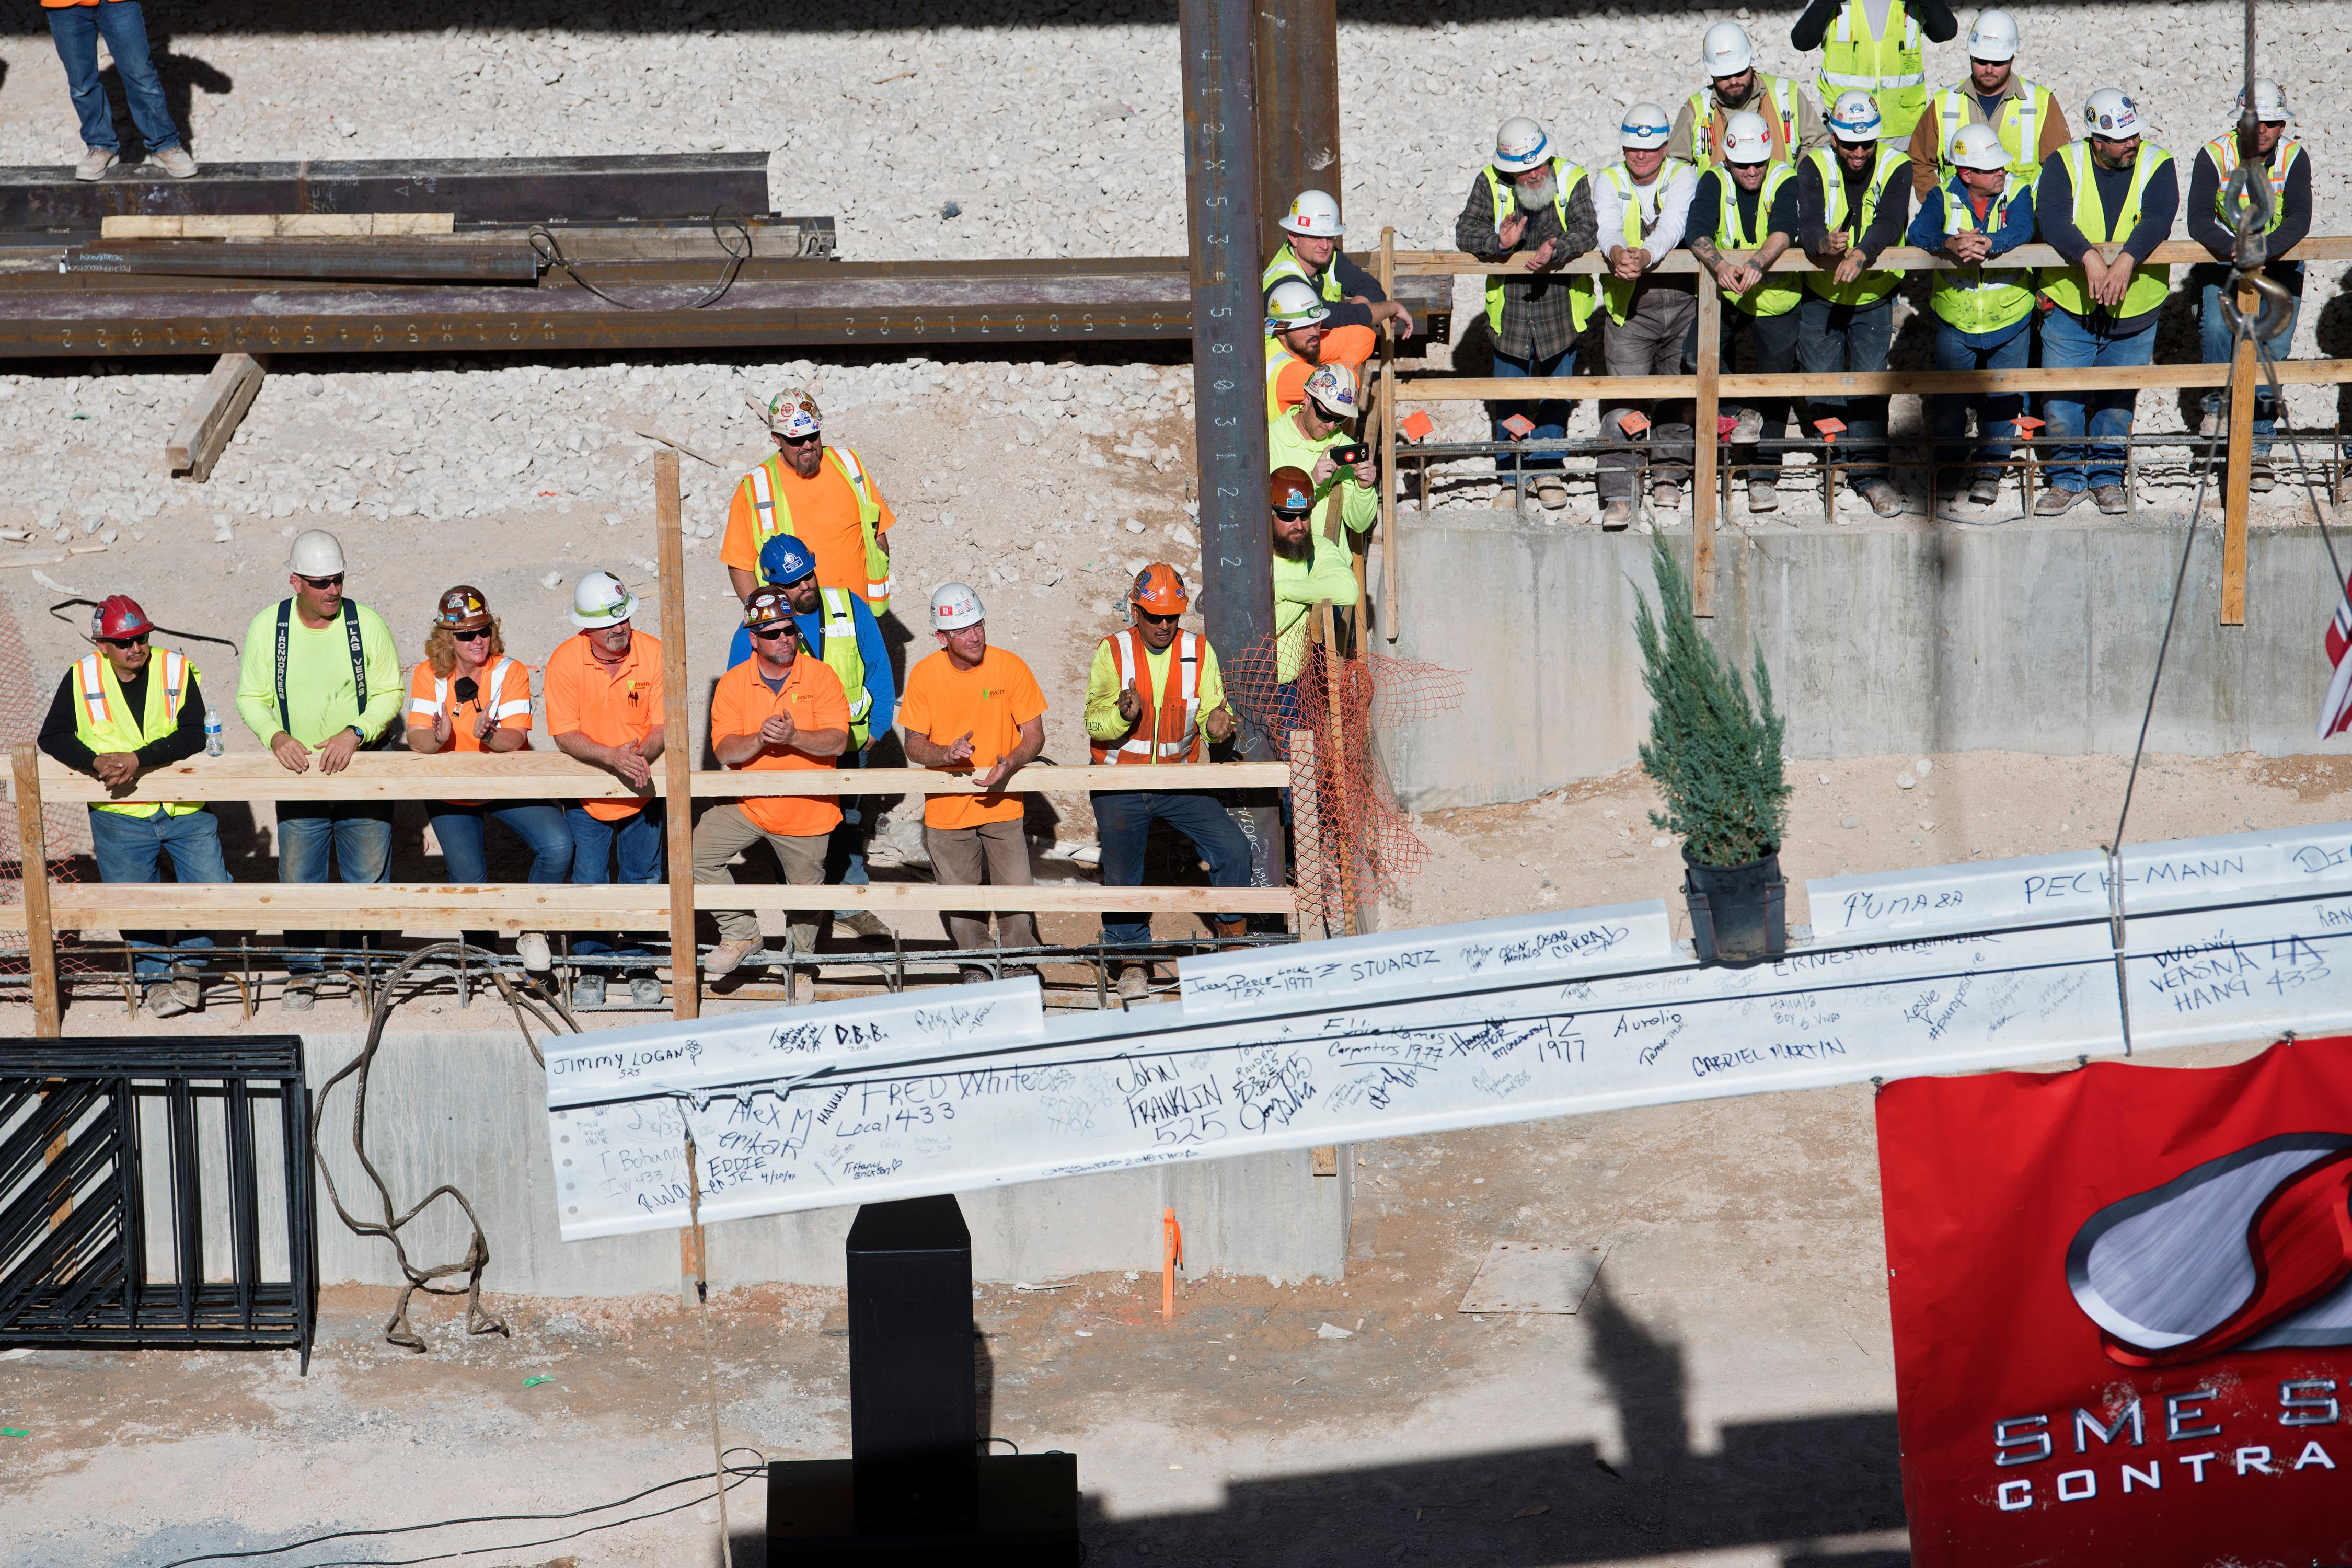 Iron workers appeal as the final beam is raised into place during the topping off ceremony for MGM Grand's expanded conference center Tuesday, January 30, 2018. CREDIT: Sam Morris/Las Vegas News Bureau